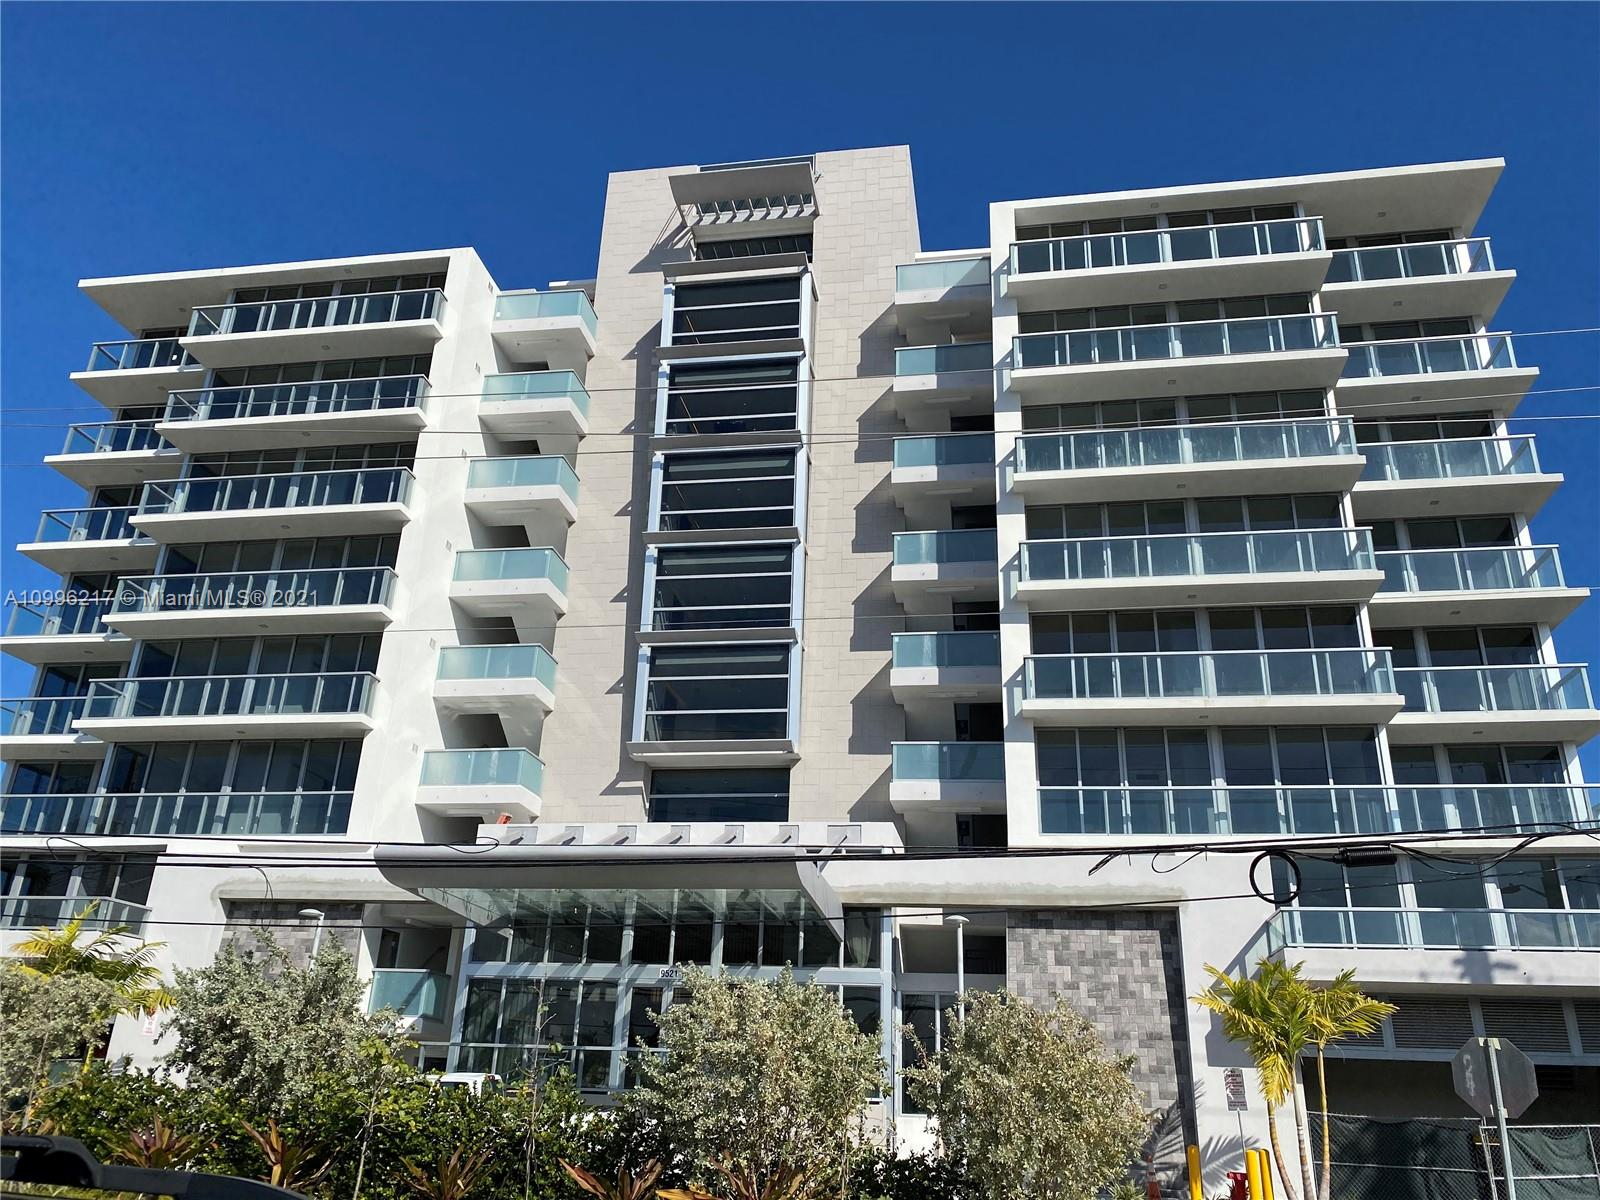 Gorgeous, new construction Bijou (still under construction, owner will assign current contract. Pictures and video are accurate). No timetable for close as of now but should be soon. 858 sq. ft. living area, 1245 sf total area. Huge balcony, patio. 9 story boutique waterfront building in prestigious Bay Harbor.  Only 41 residences. This is the only new construction in the area. Walk or bike to the beach or Bal Harbour Shops.  Beautiful architecture by Revuelta and bold, modern interiors by Adriana Hoyos.  Wholesale financing available for qualified buyers with 10% down and $2332 per month.